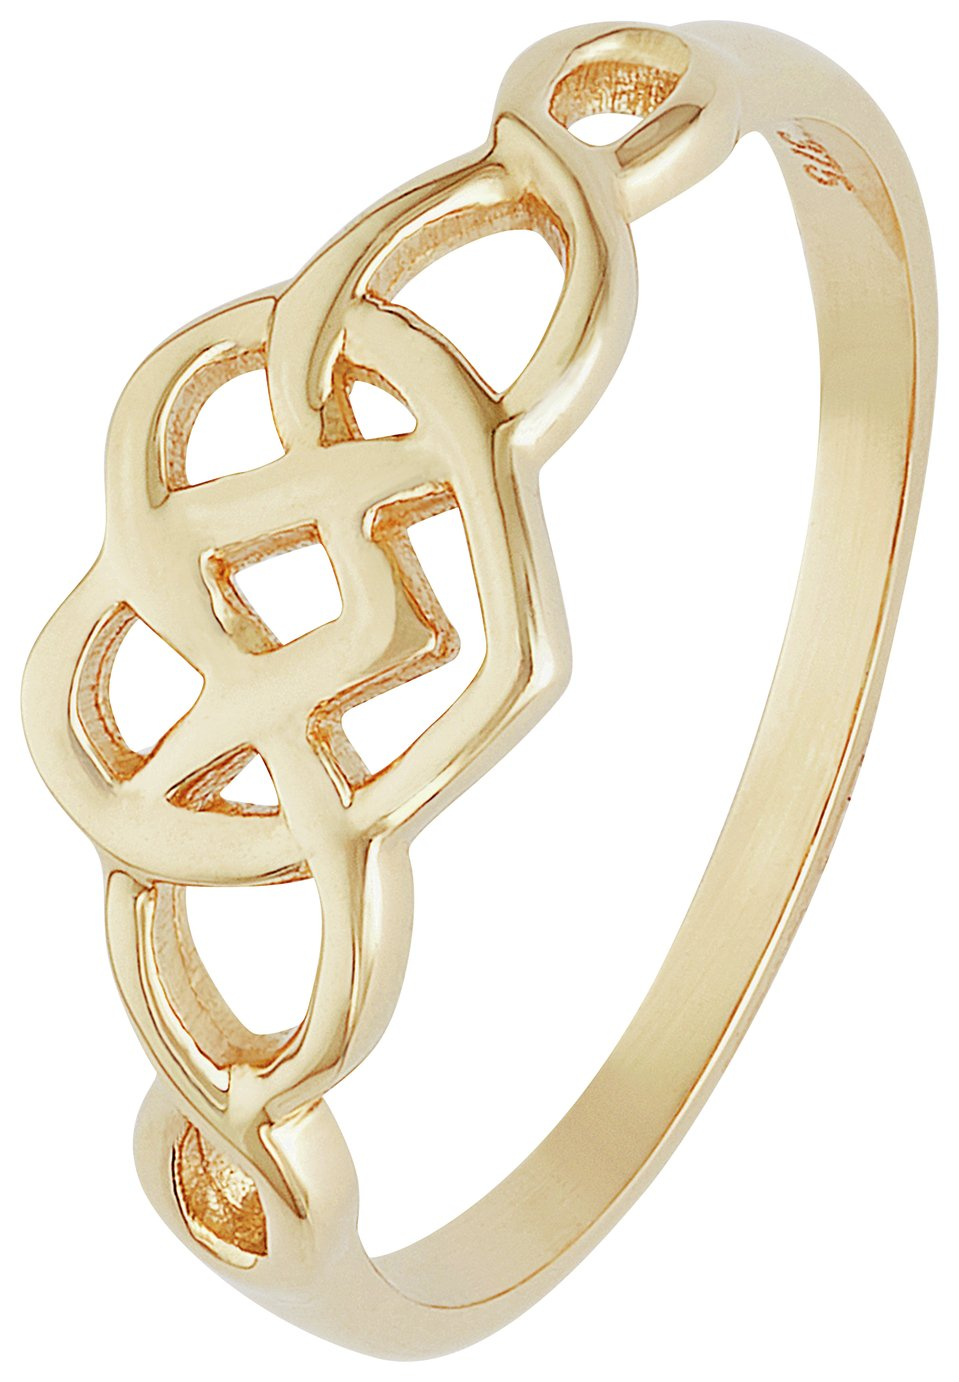 Buy Revere 9ct Gold Celtic Heart Knot Ring at Argos Your